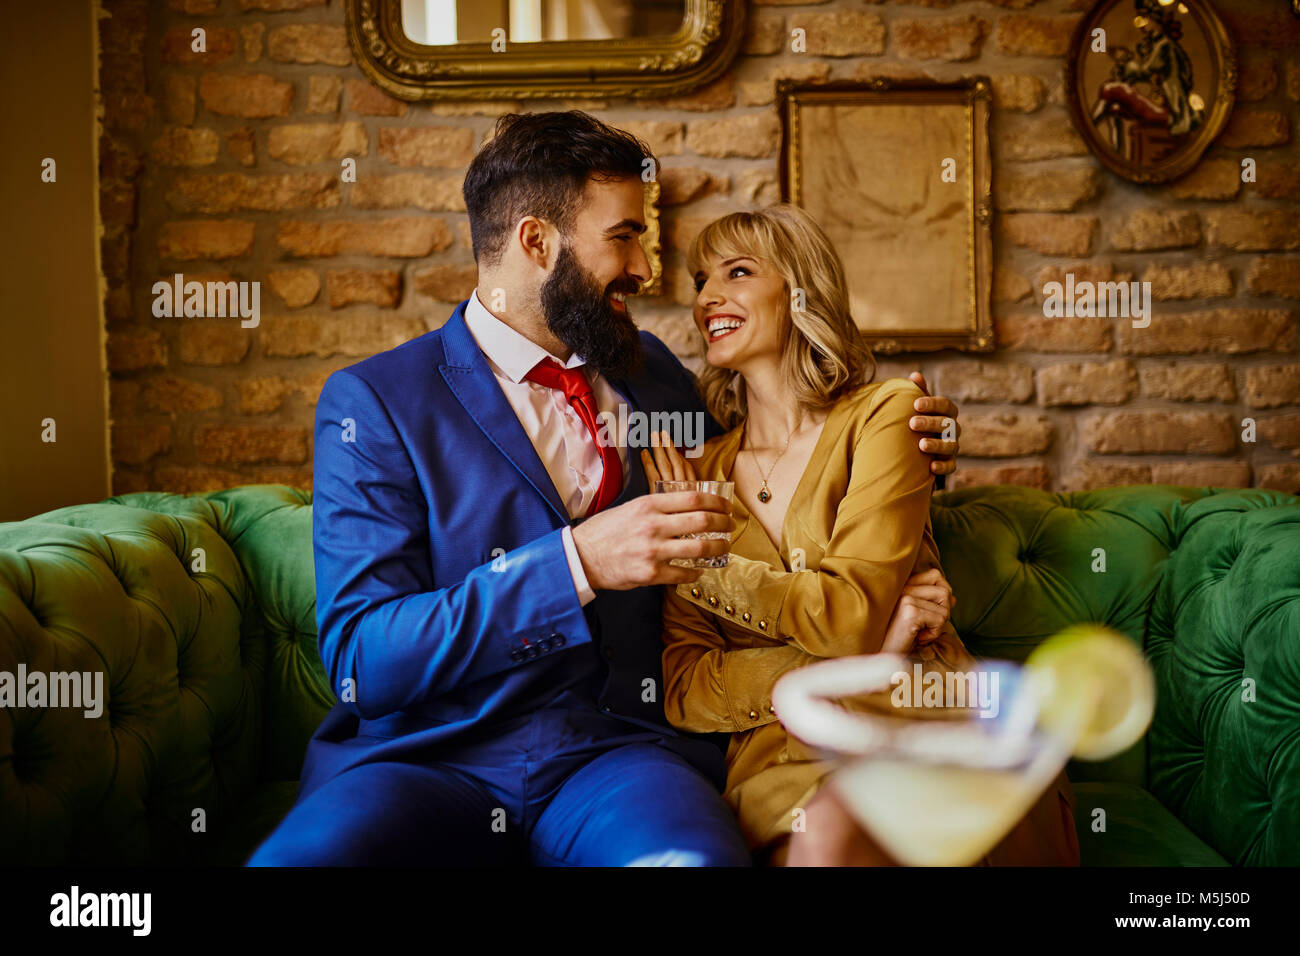 Happy elegant couple sitting on couch embracing - Stock Image